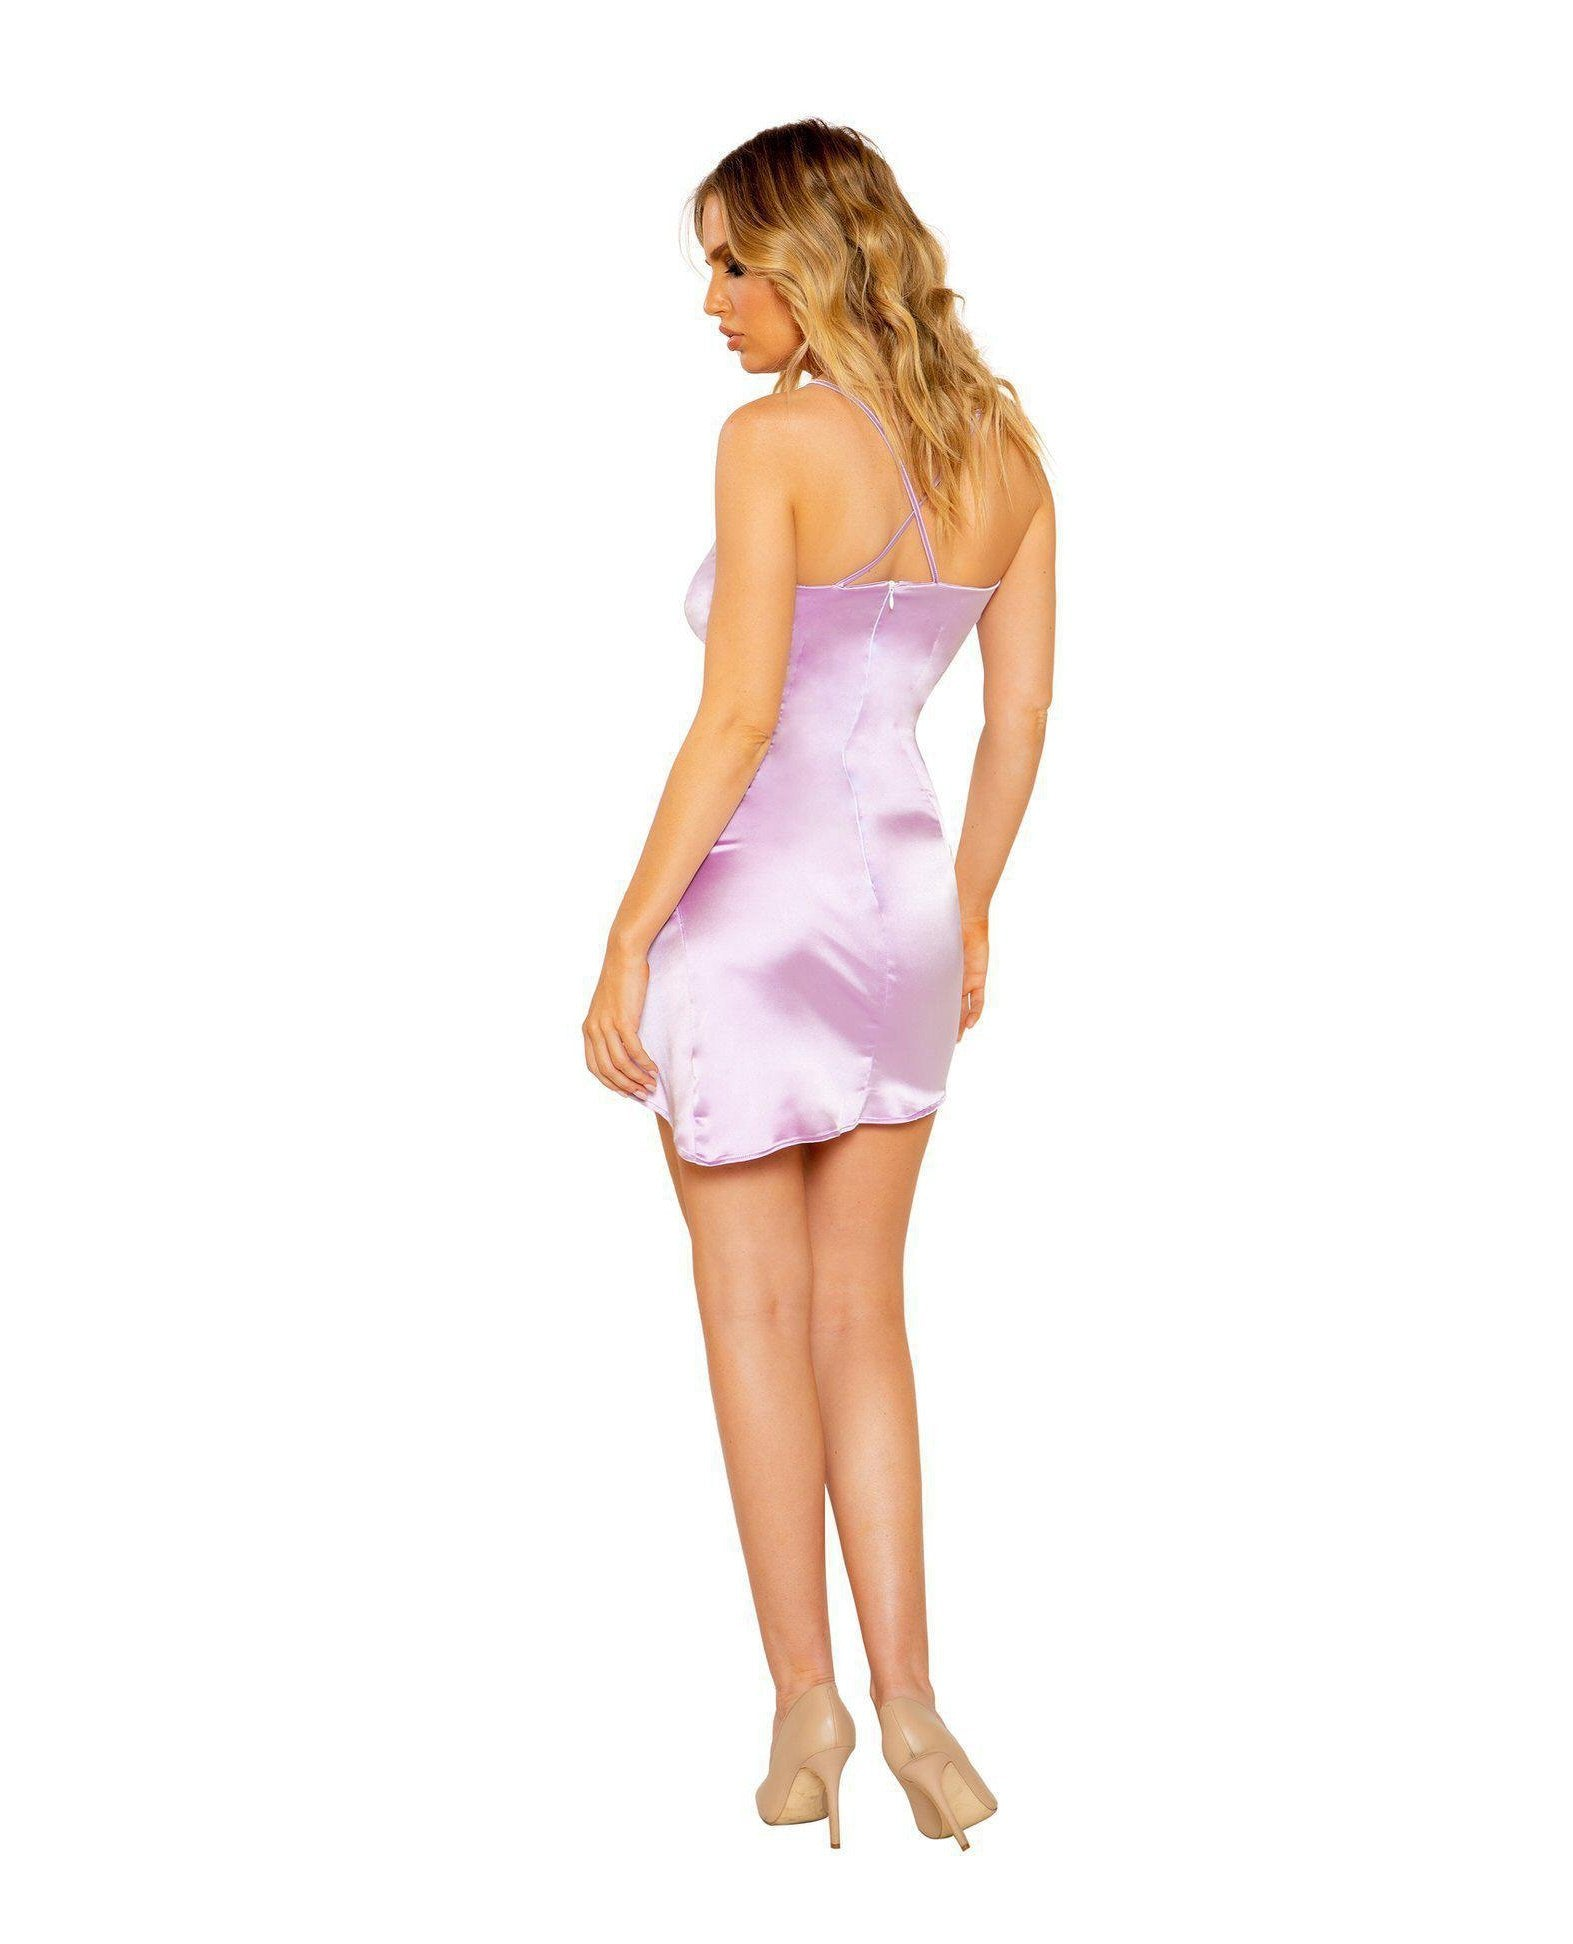 Satin Dress with Overlapping Scrunch Detail club wear Size SmallColor LavenderNakees